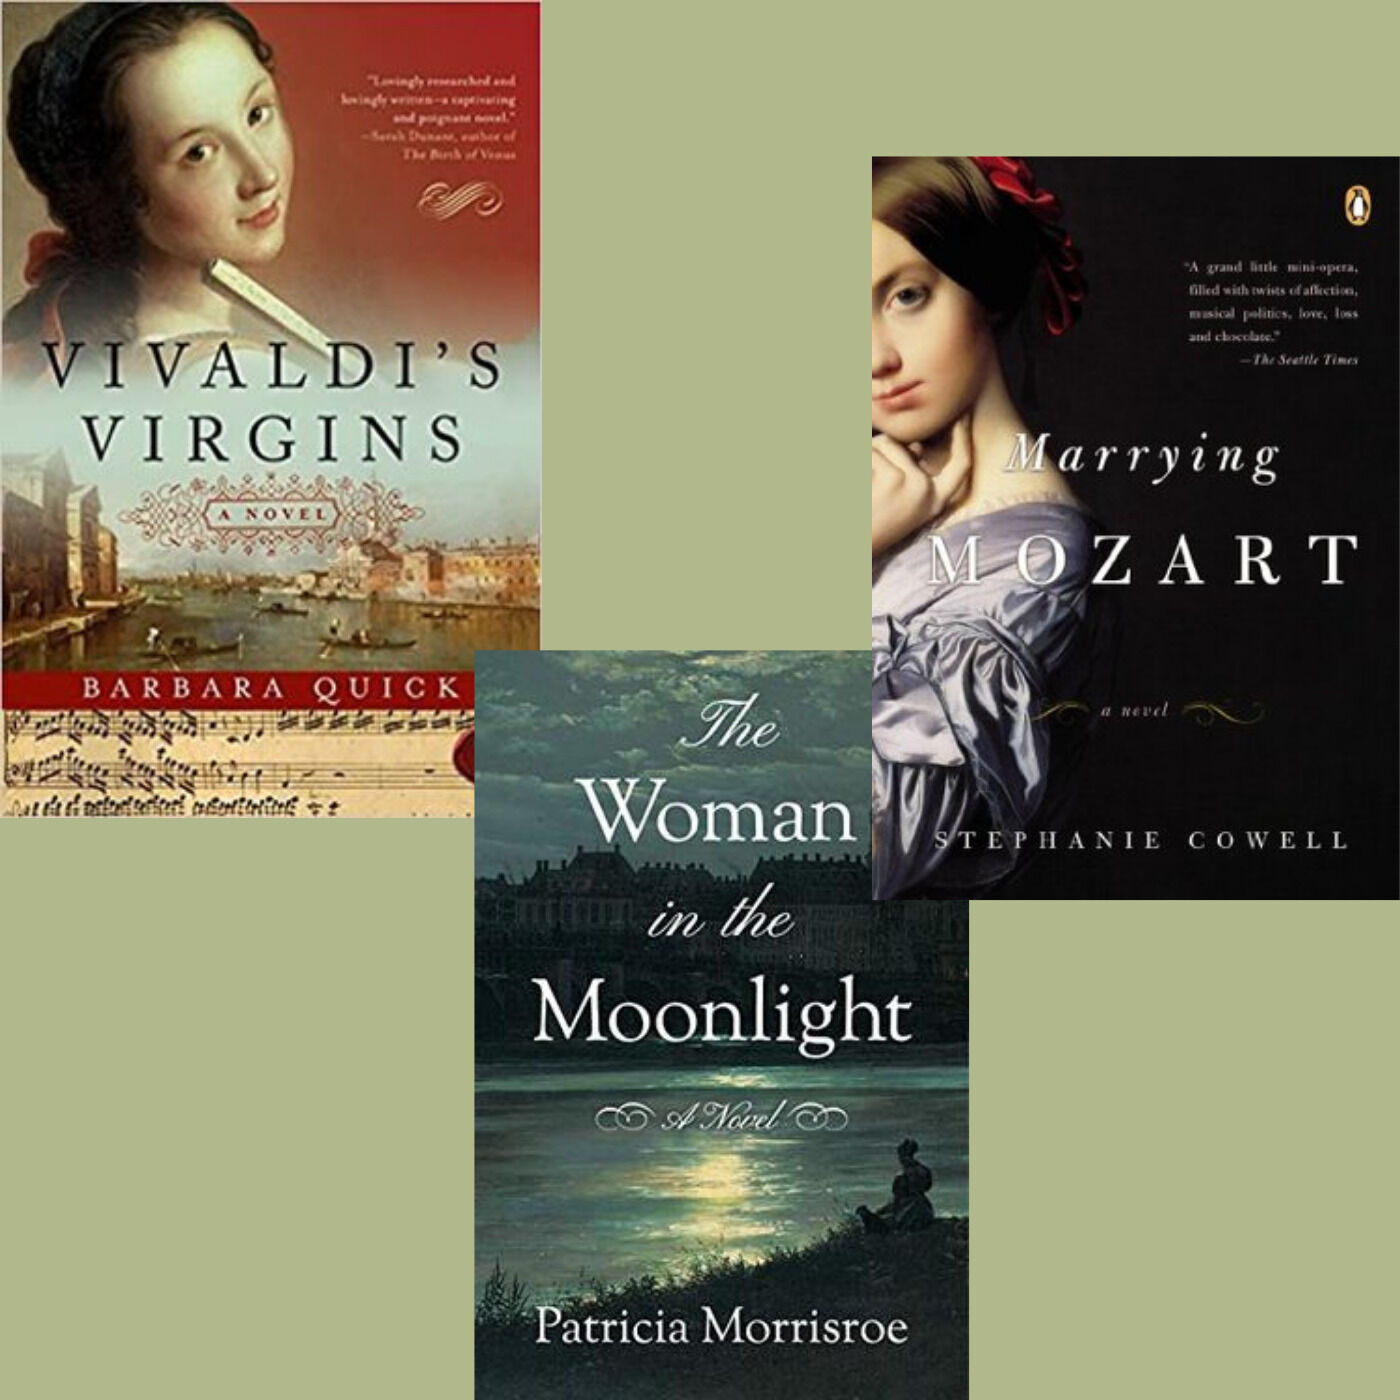 Vivaldi and Mozart and Beethoven, Oh My! Three Novelists Talk About Music in Fiction